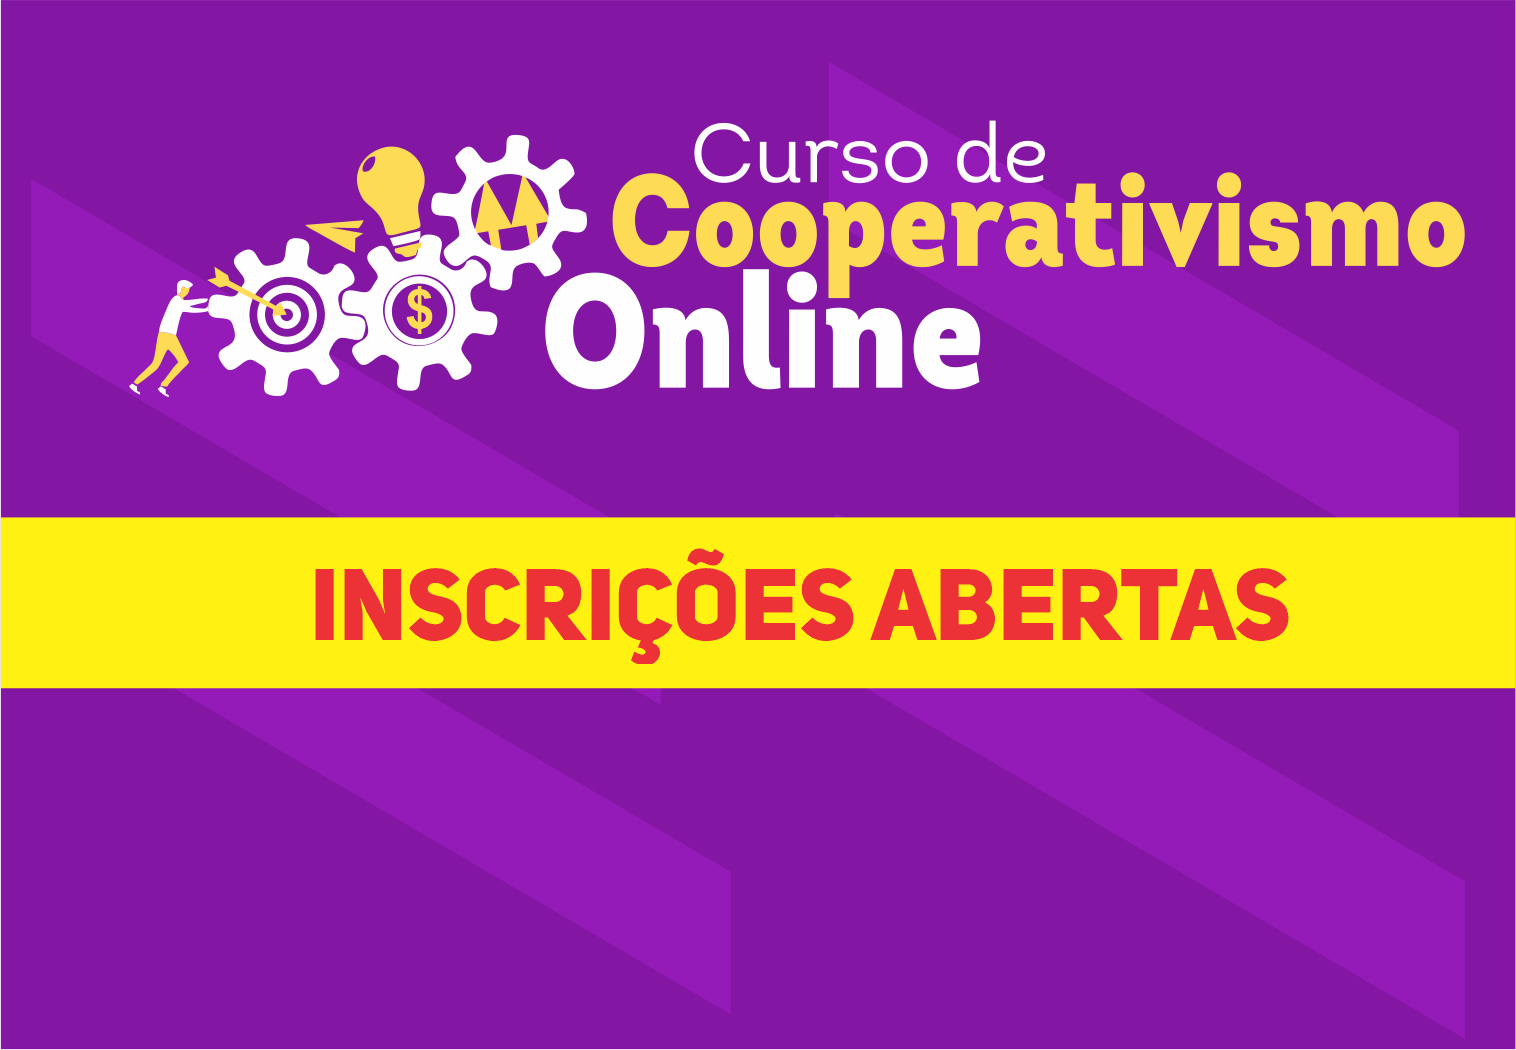 selo-curso-online-1618181217.png